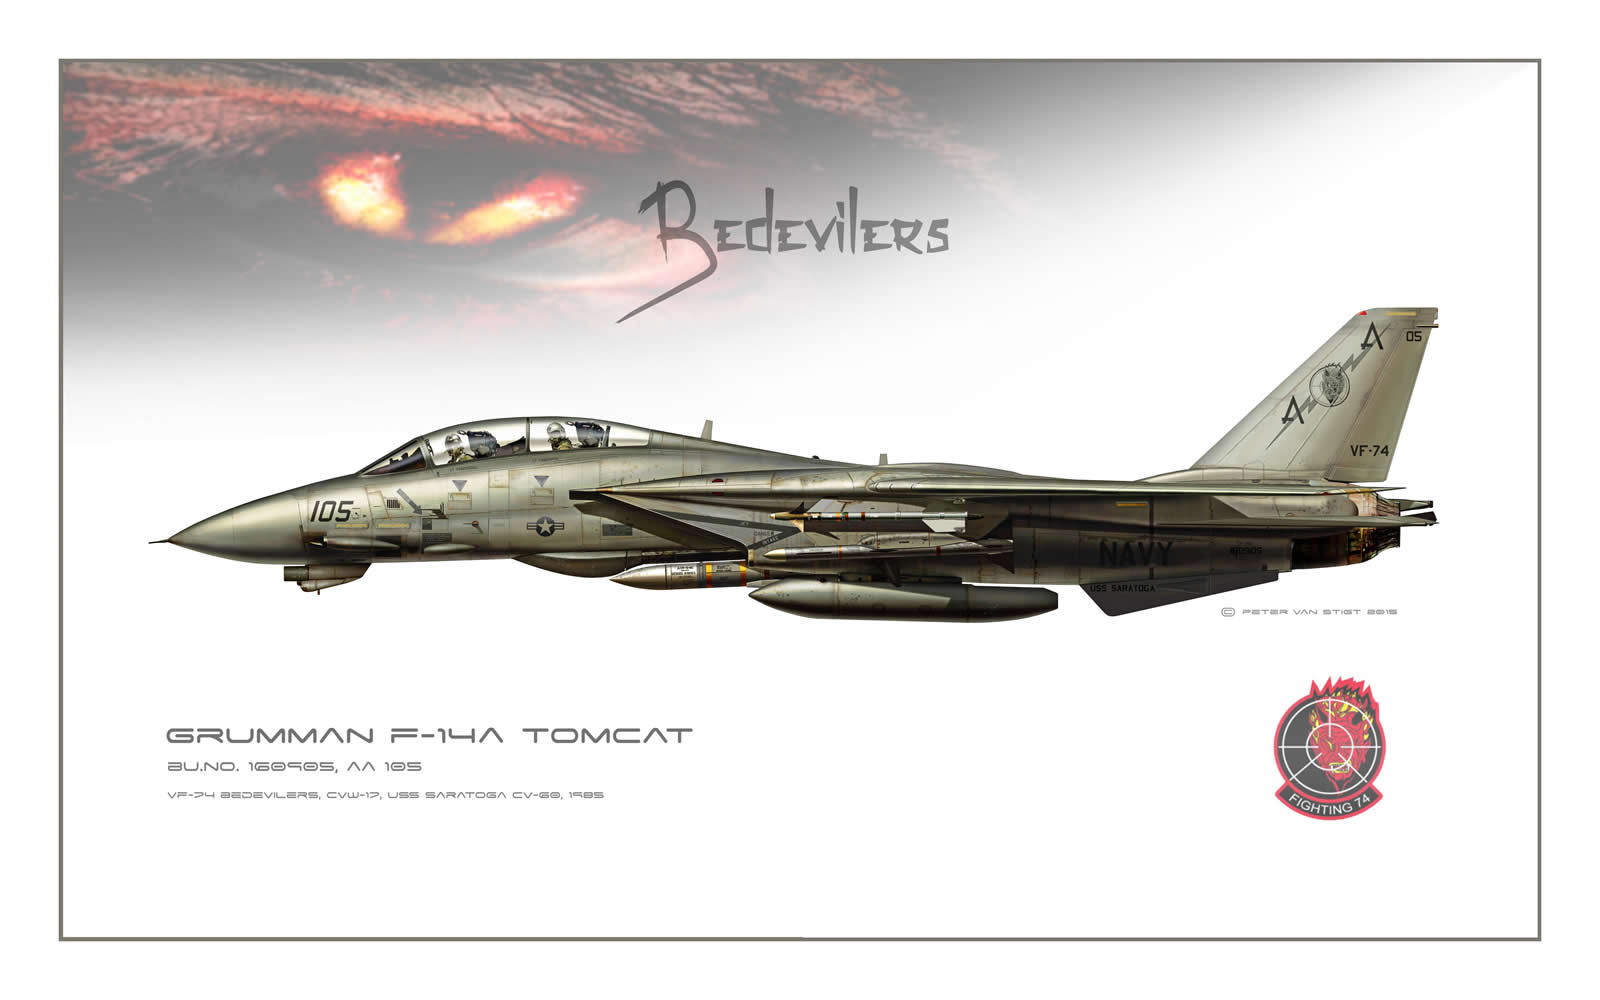 AIRFIGHTERS.COM - F-14 Tomcat Atlantic Squadrons